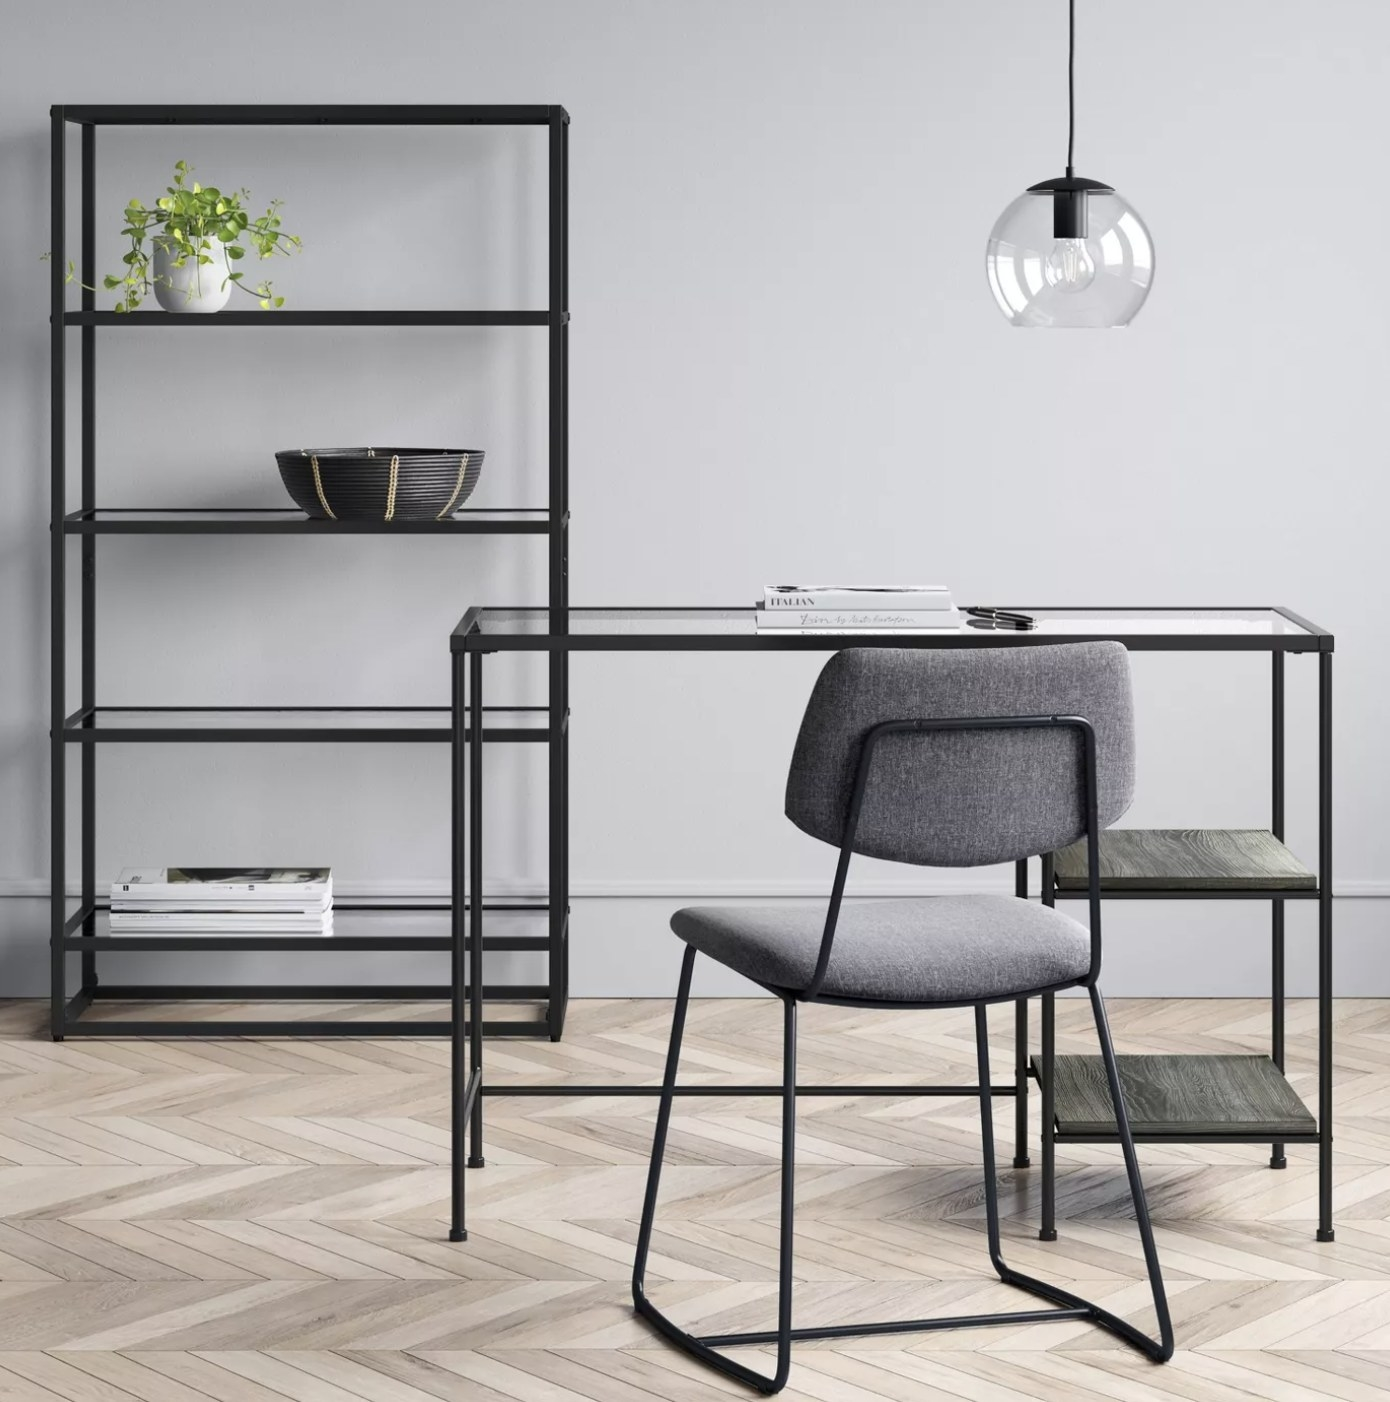 The glass desk with metal accents